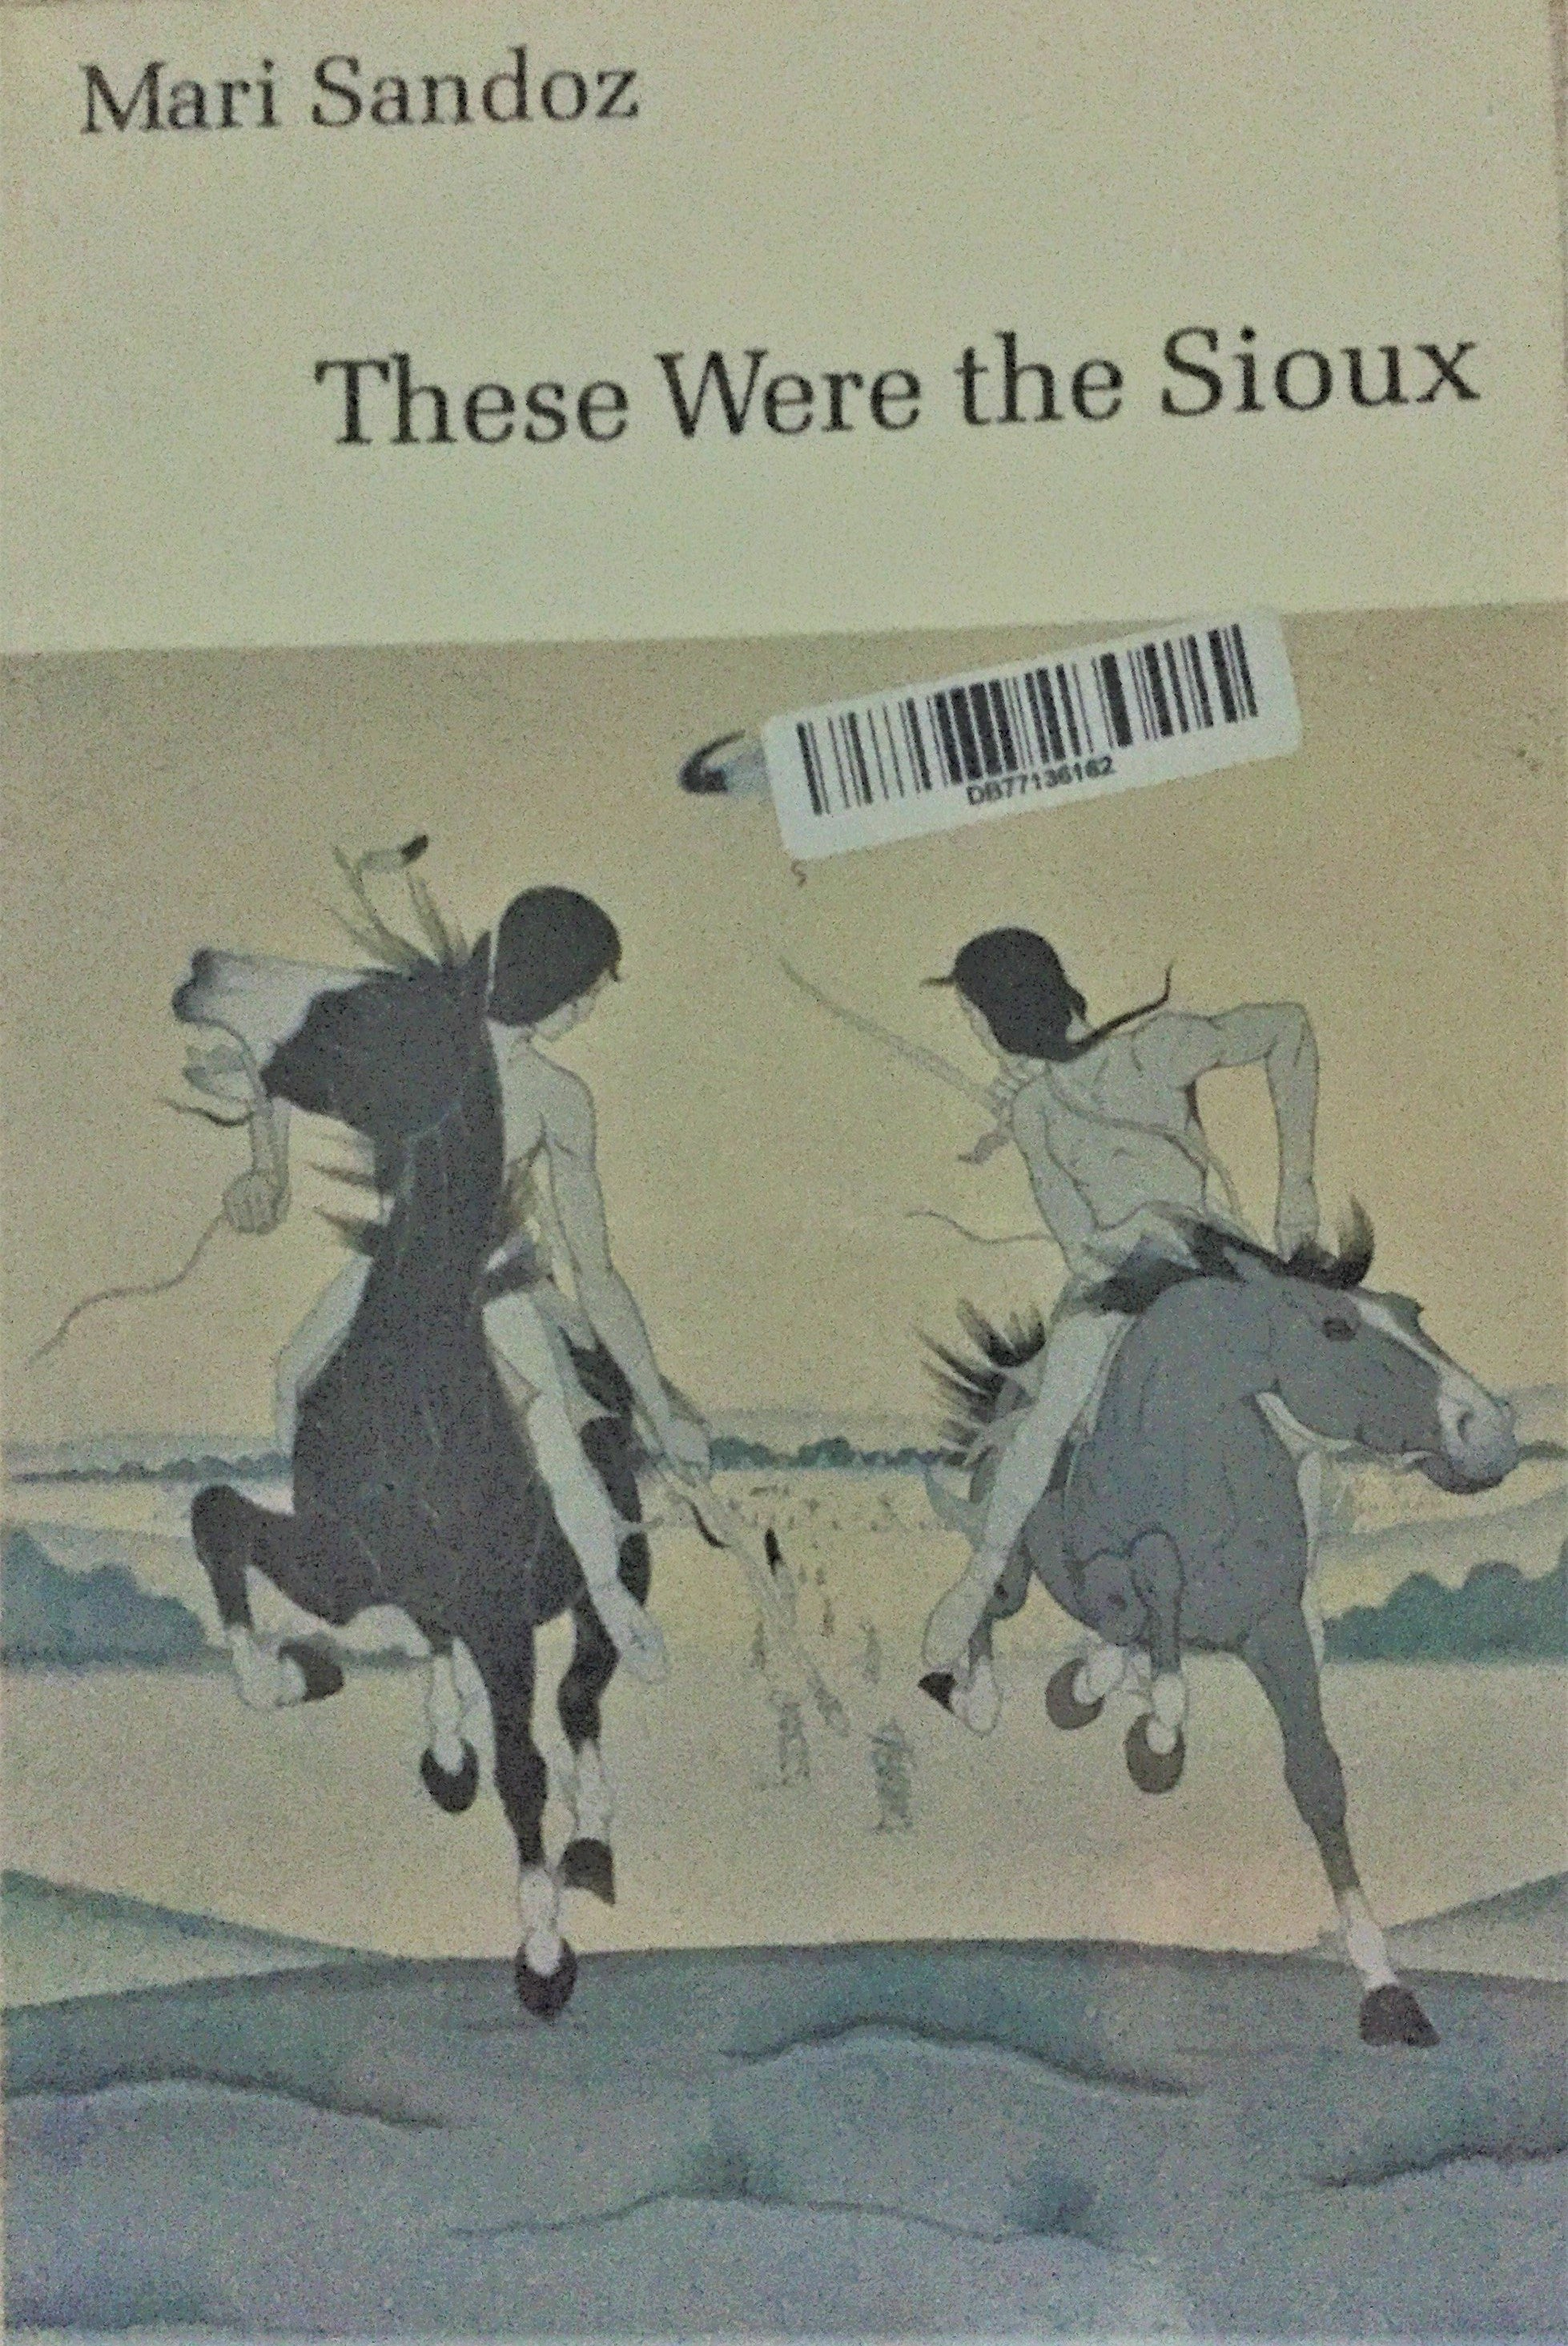 BOOKS - These were the Sioux